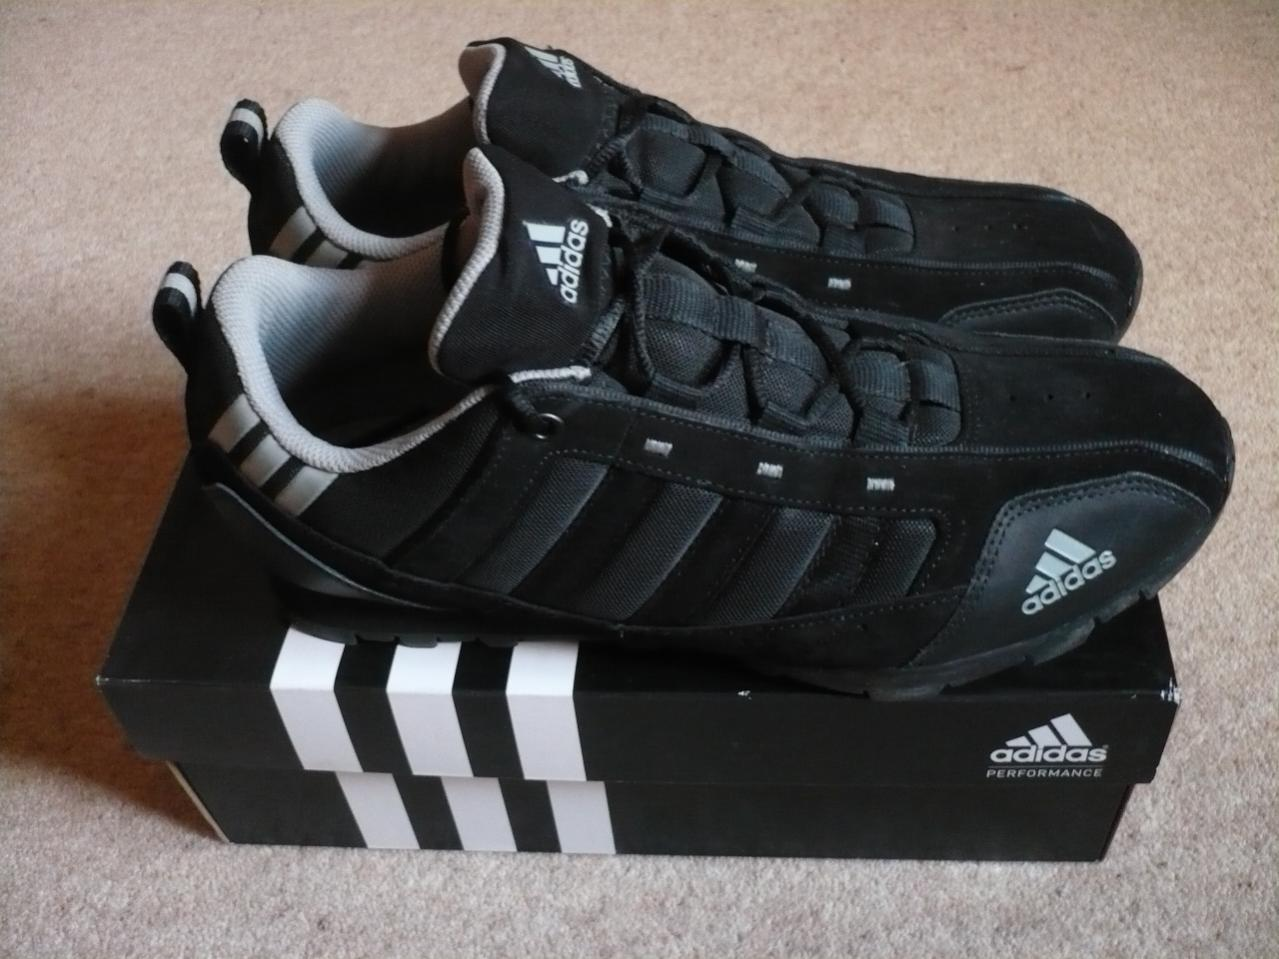 Touring Cycling Shoes Wide Feet